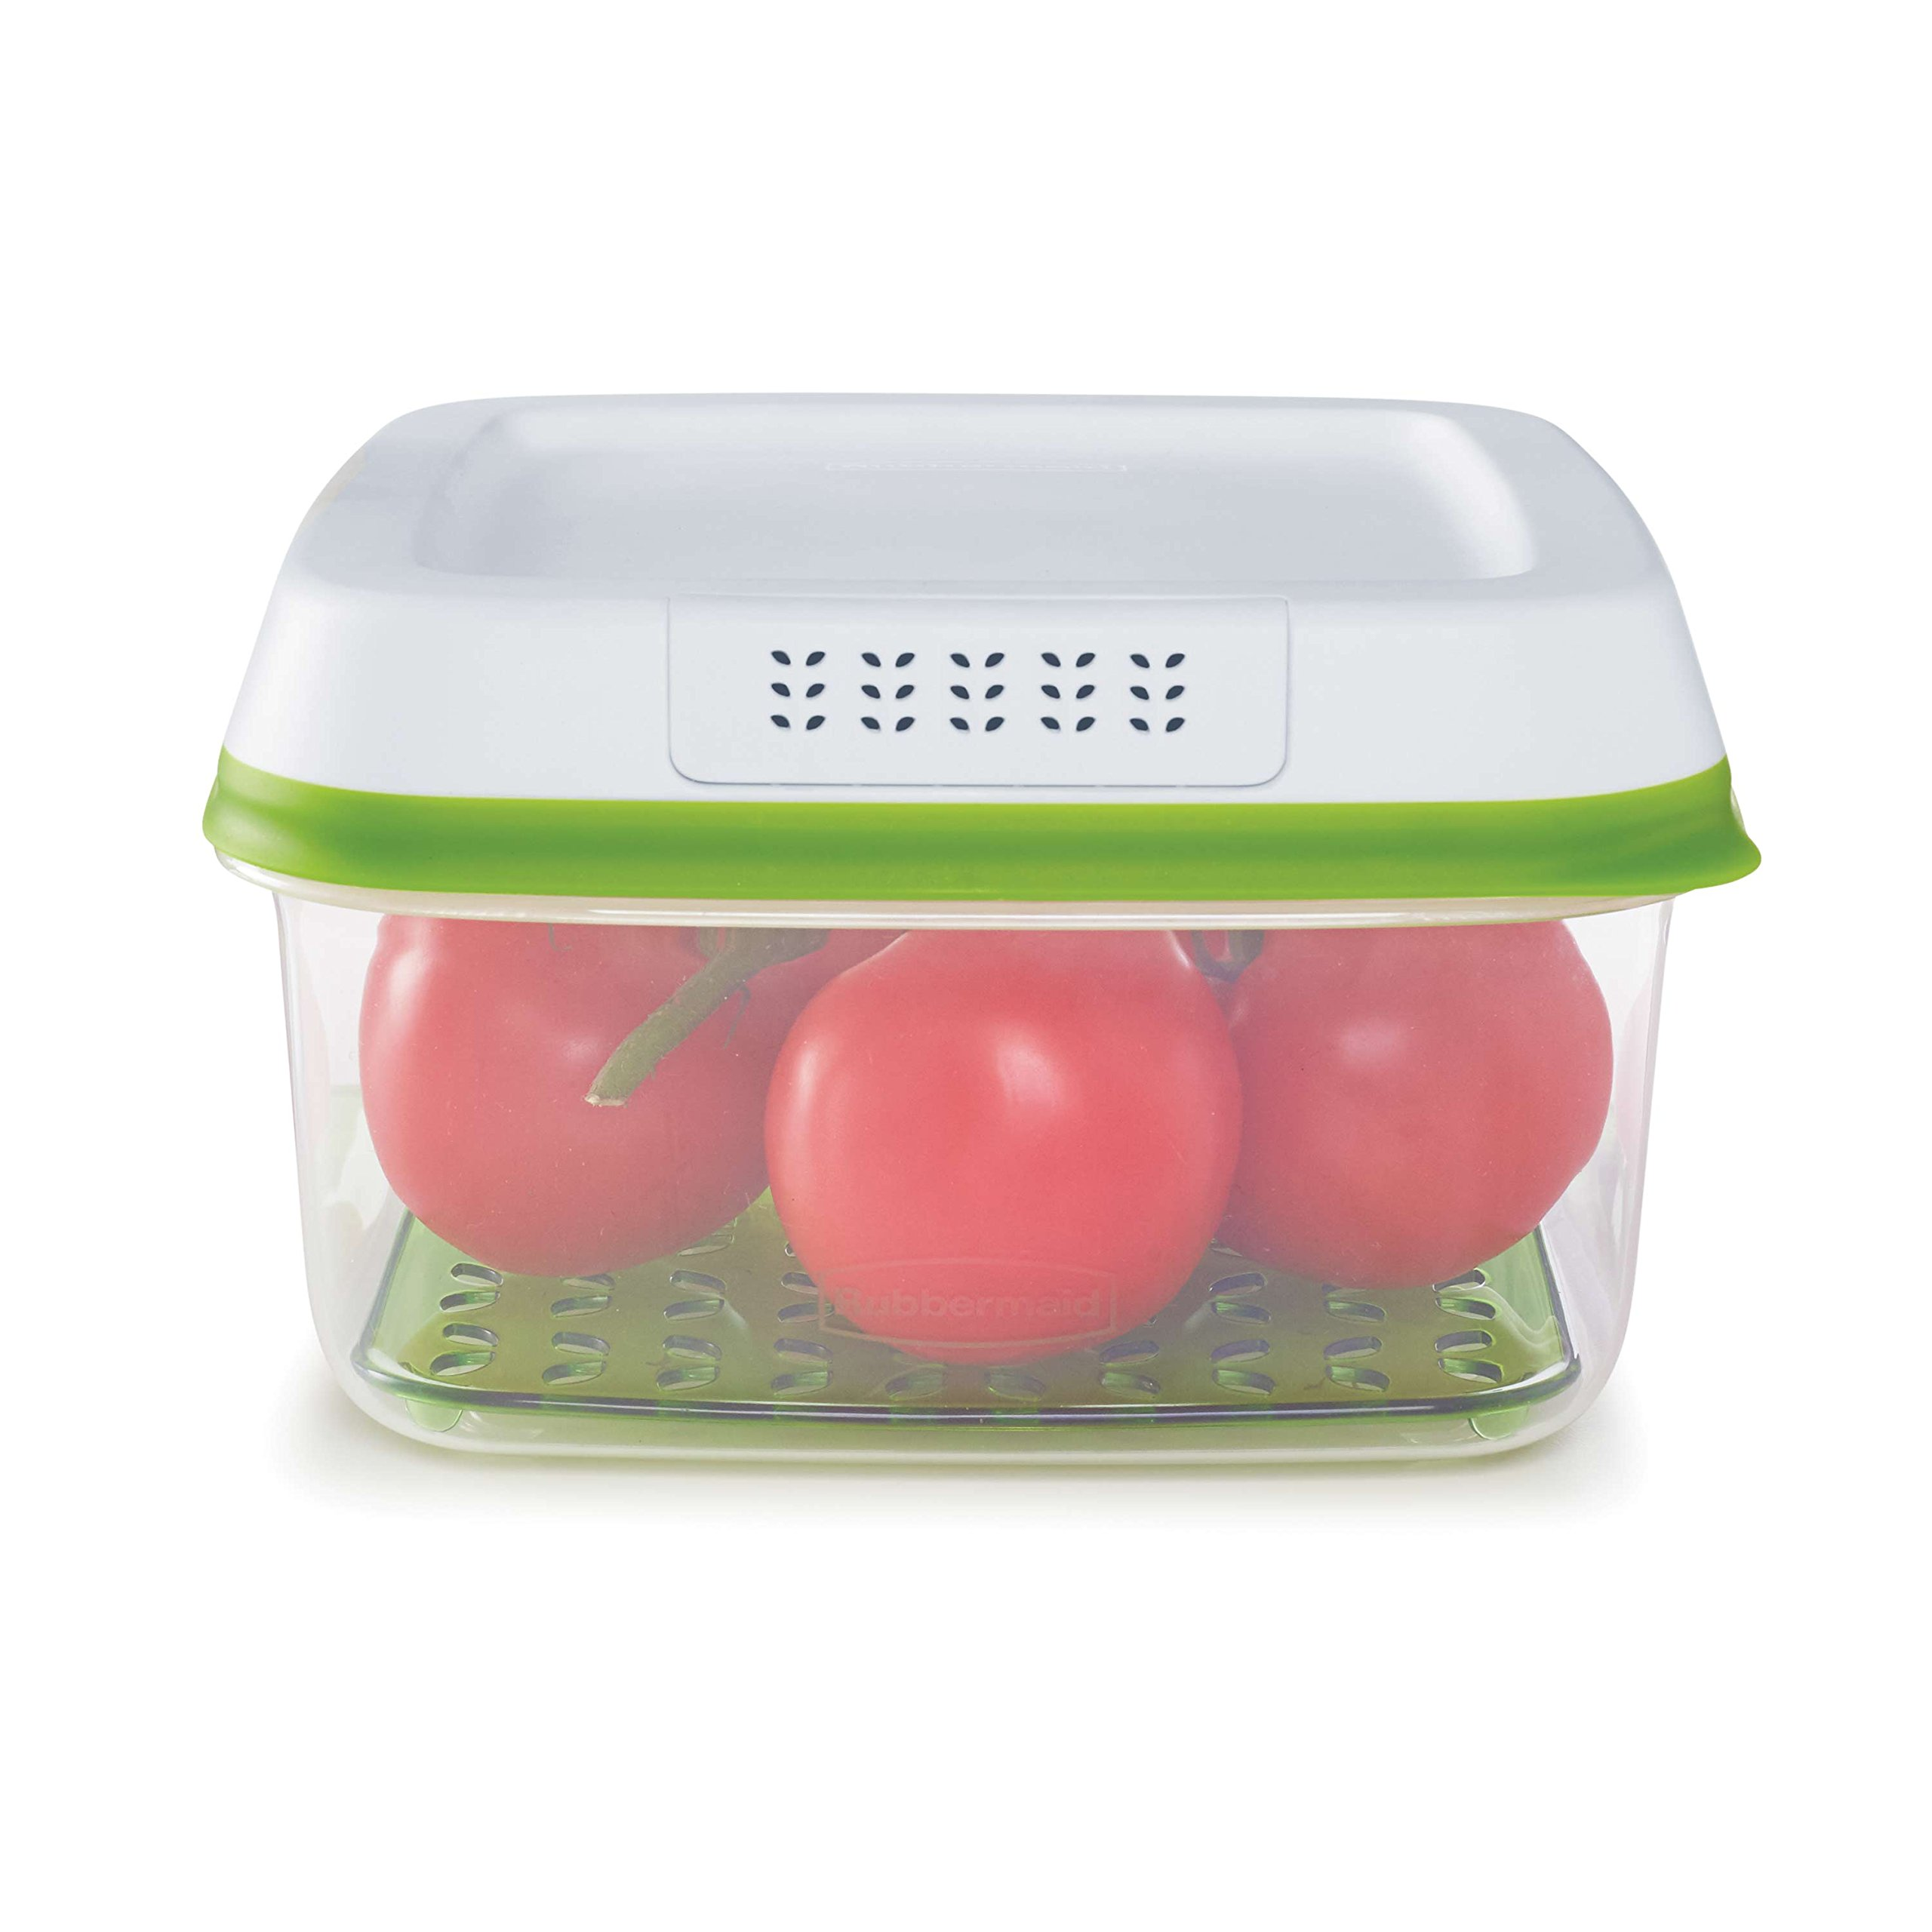 Rubbermaid FreshWorks Produce Saver Food Storage Container, Large Square, 11.1 Cup, Green 1996984 by Rubbermaid